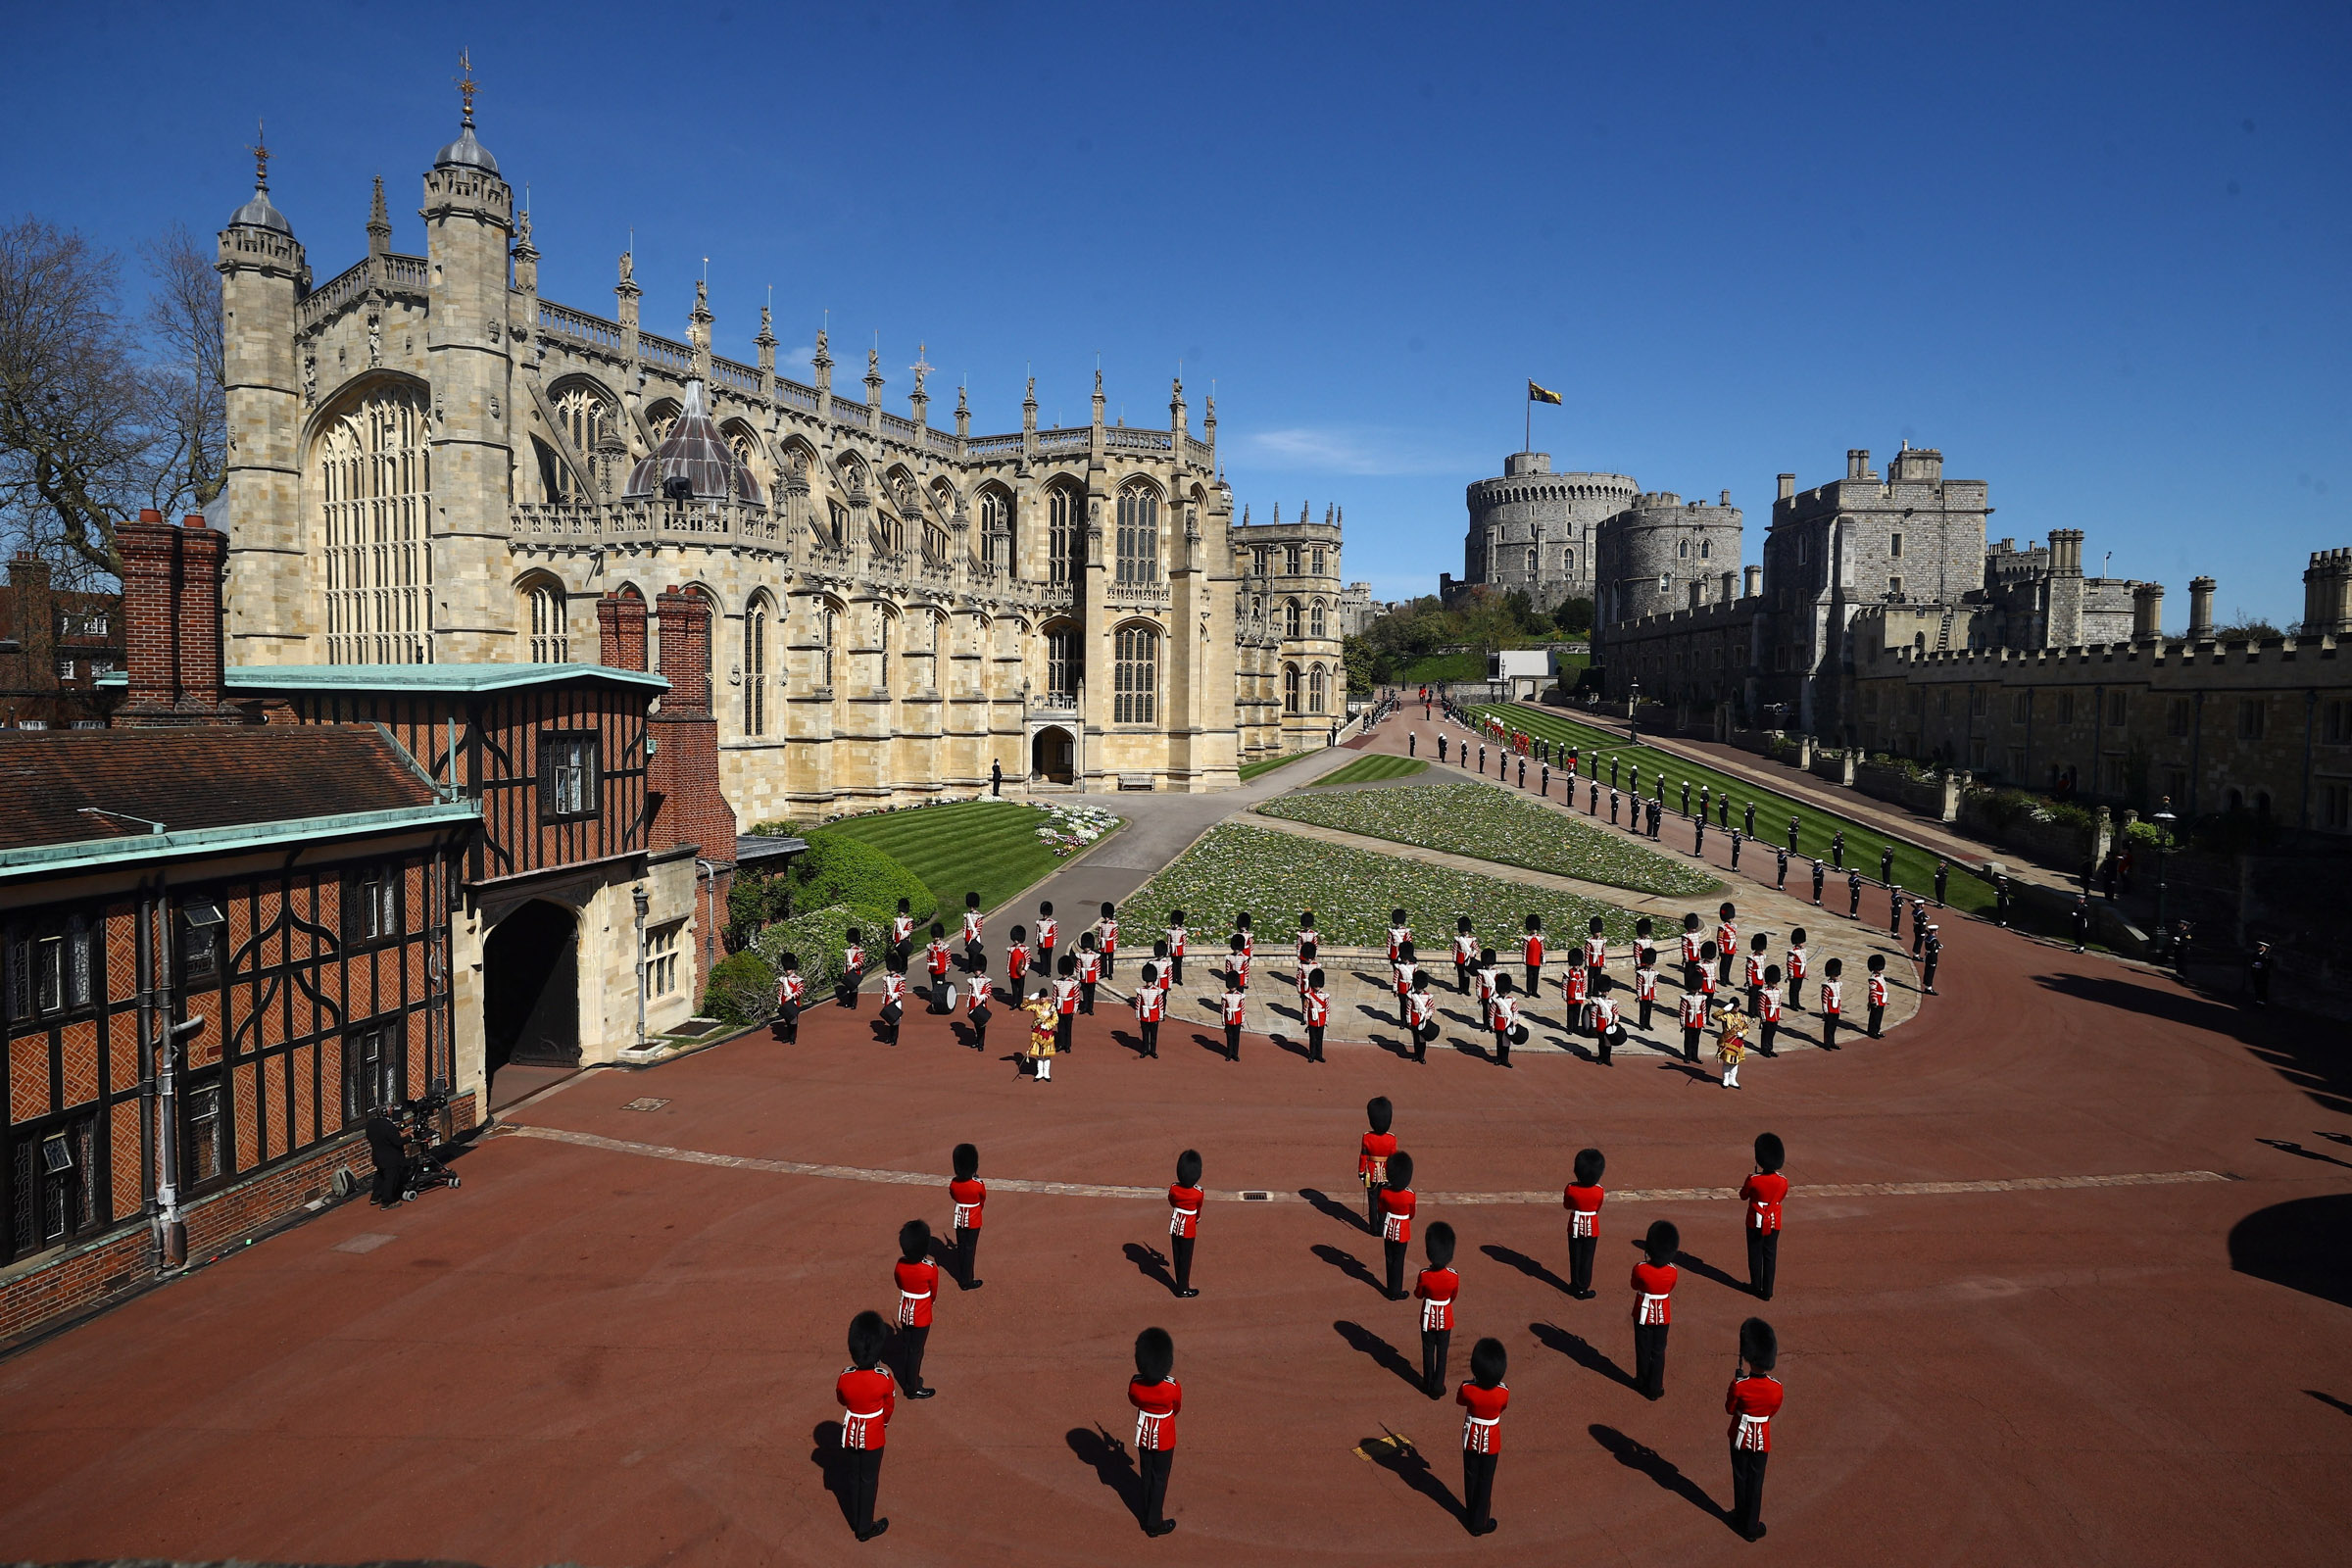 Members of the military stand outside St. George's Chapel at Windsor.